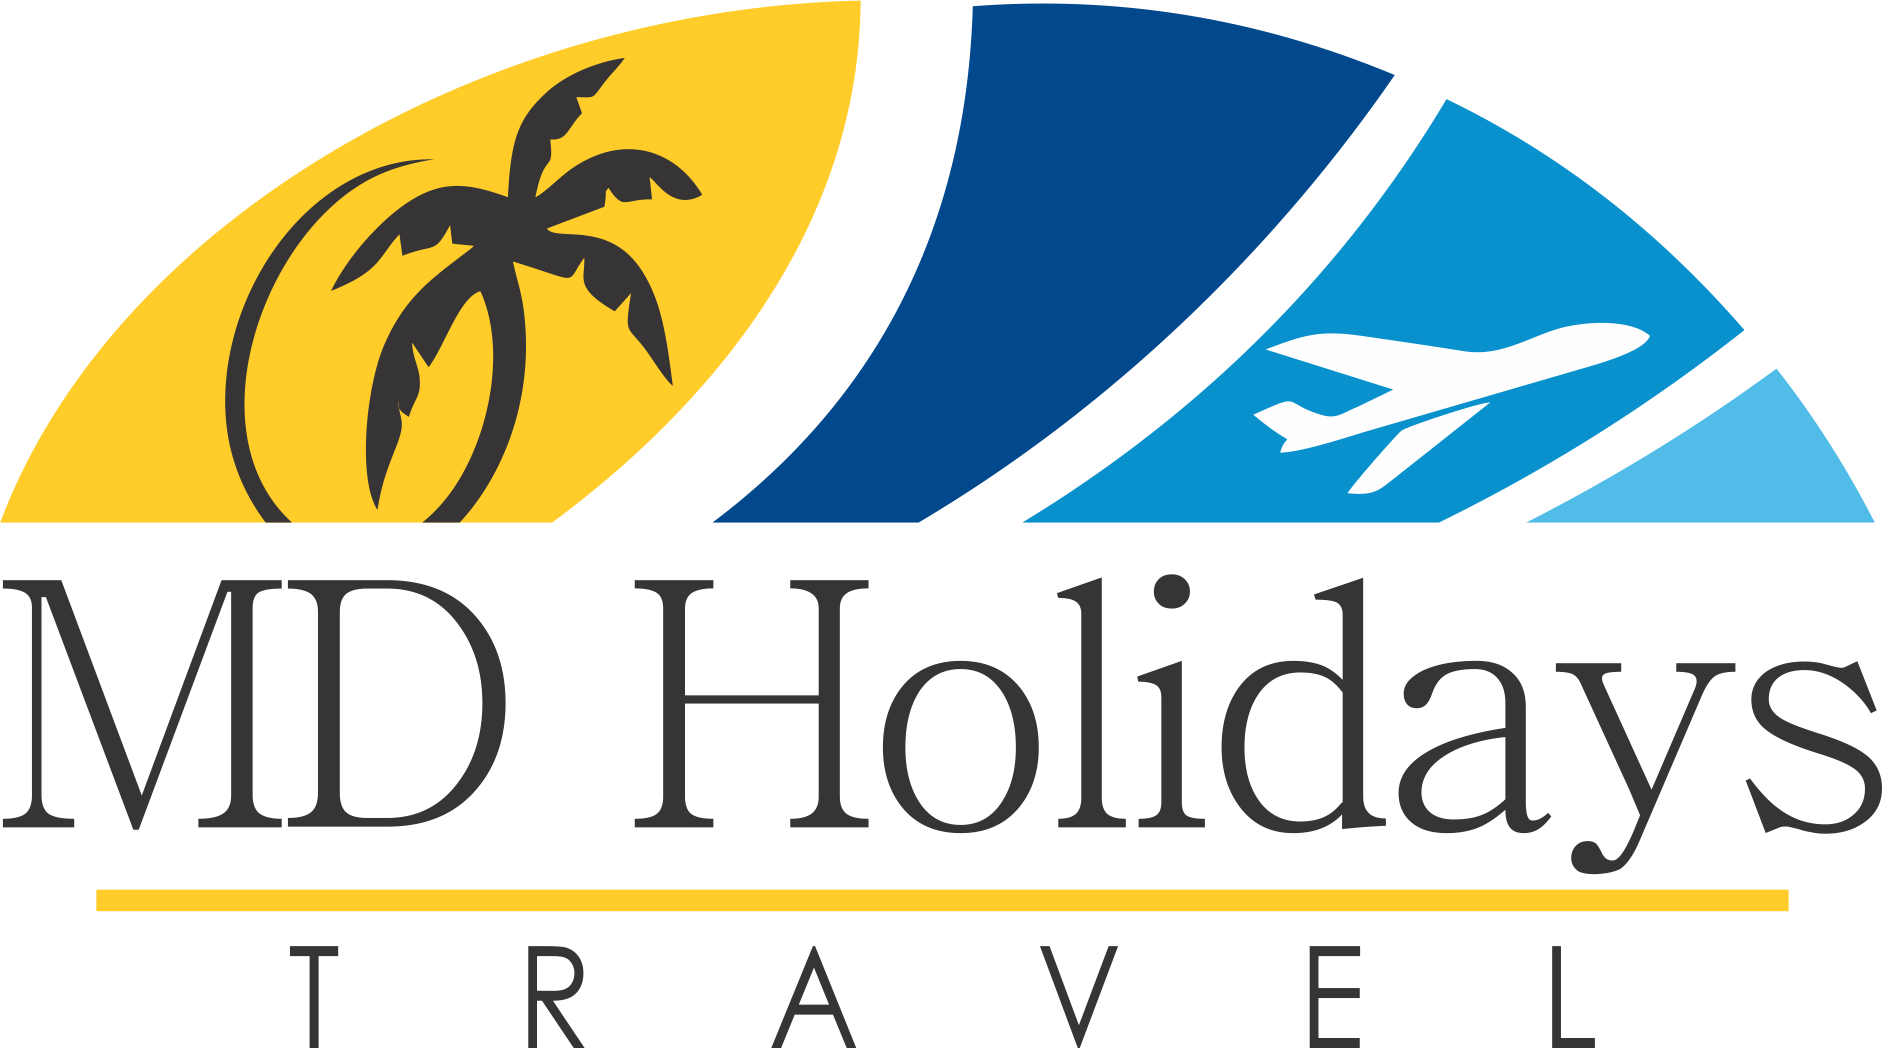 MD HOLIDAYS TRAVEL | Turcia - MD HOLIDAYS TRAVEL